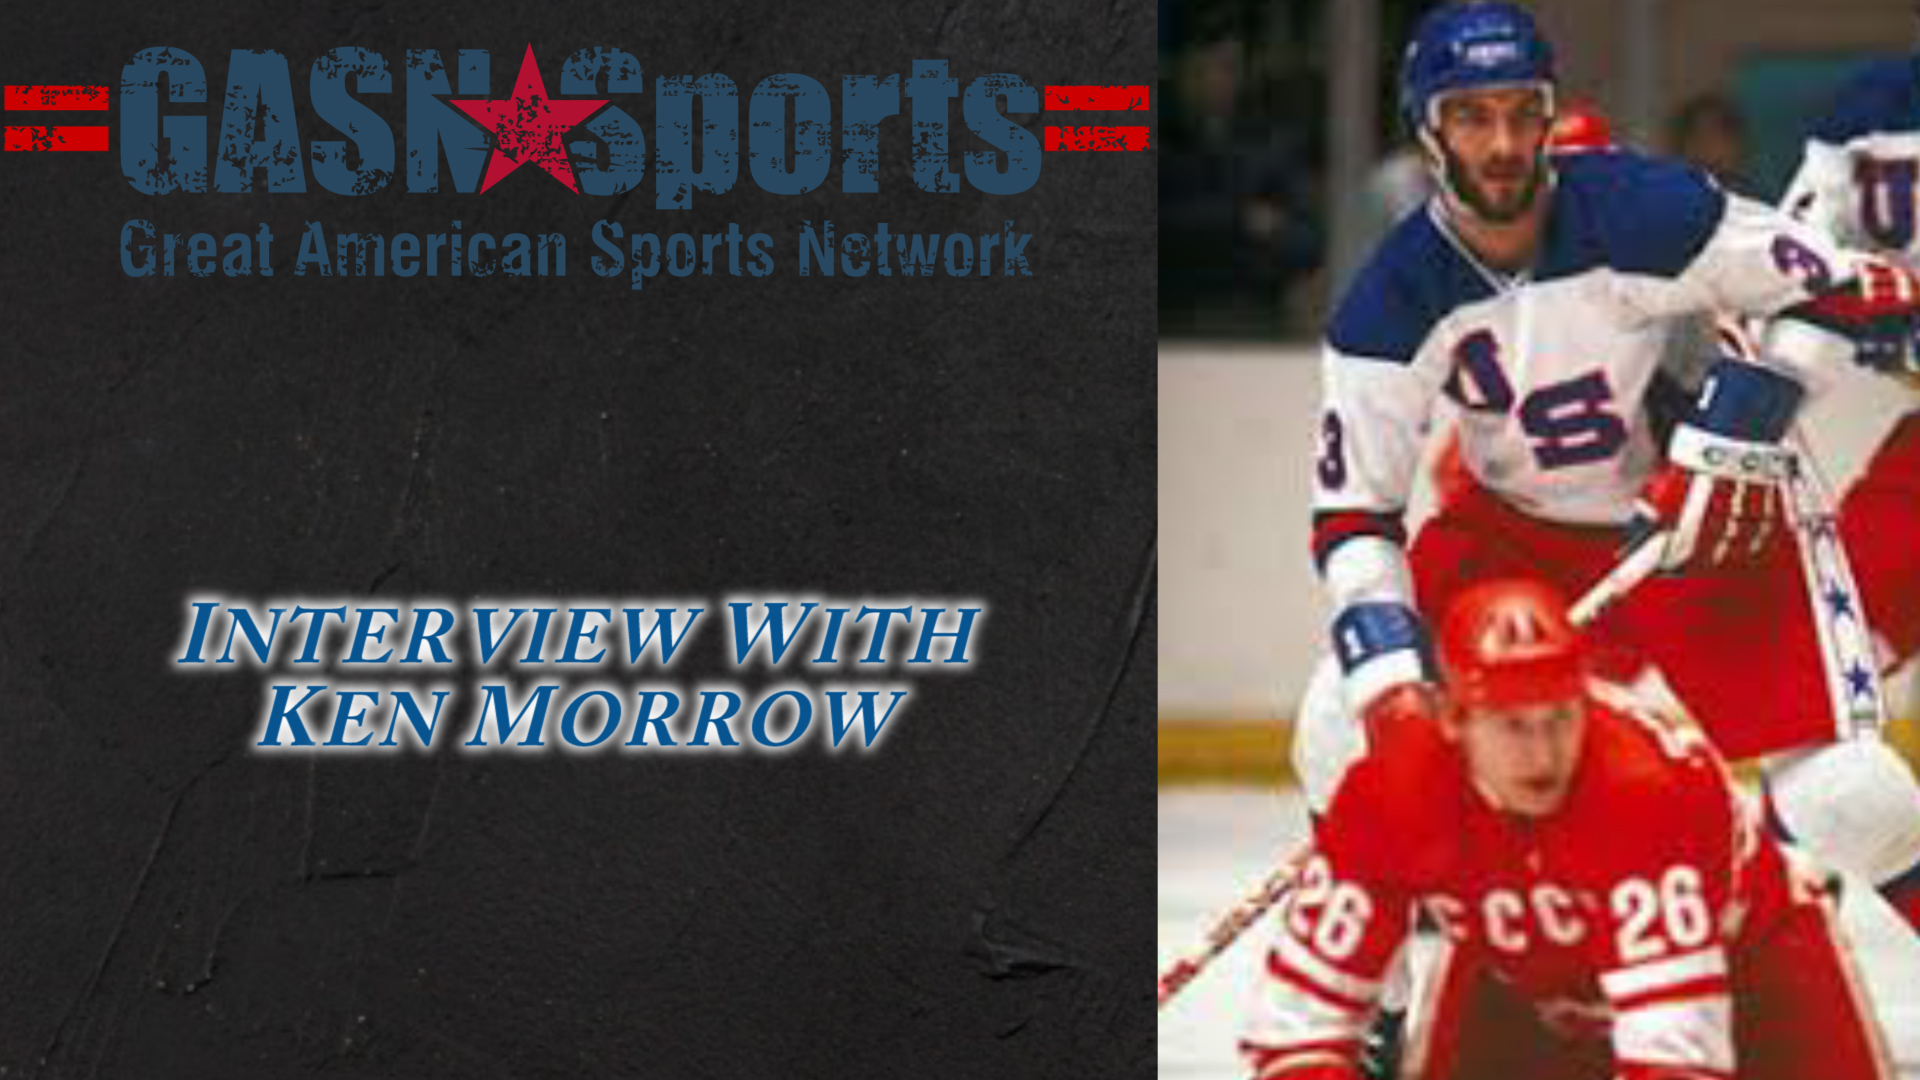 'Miracle on Ice' Conversation With Ken Morrow